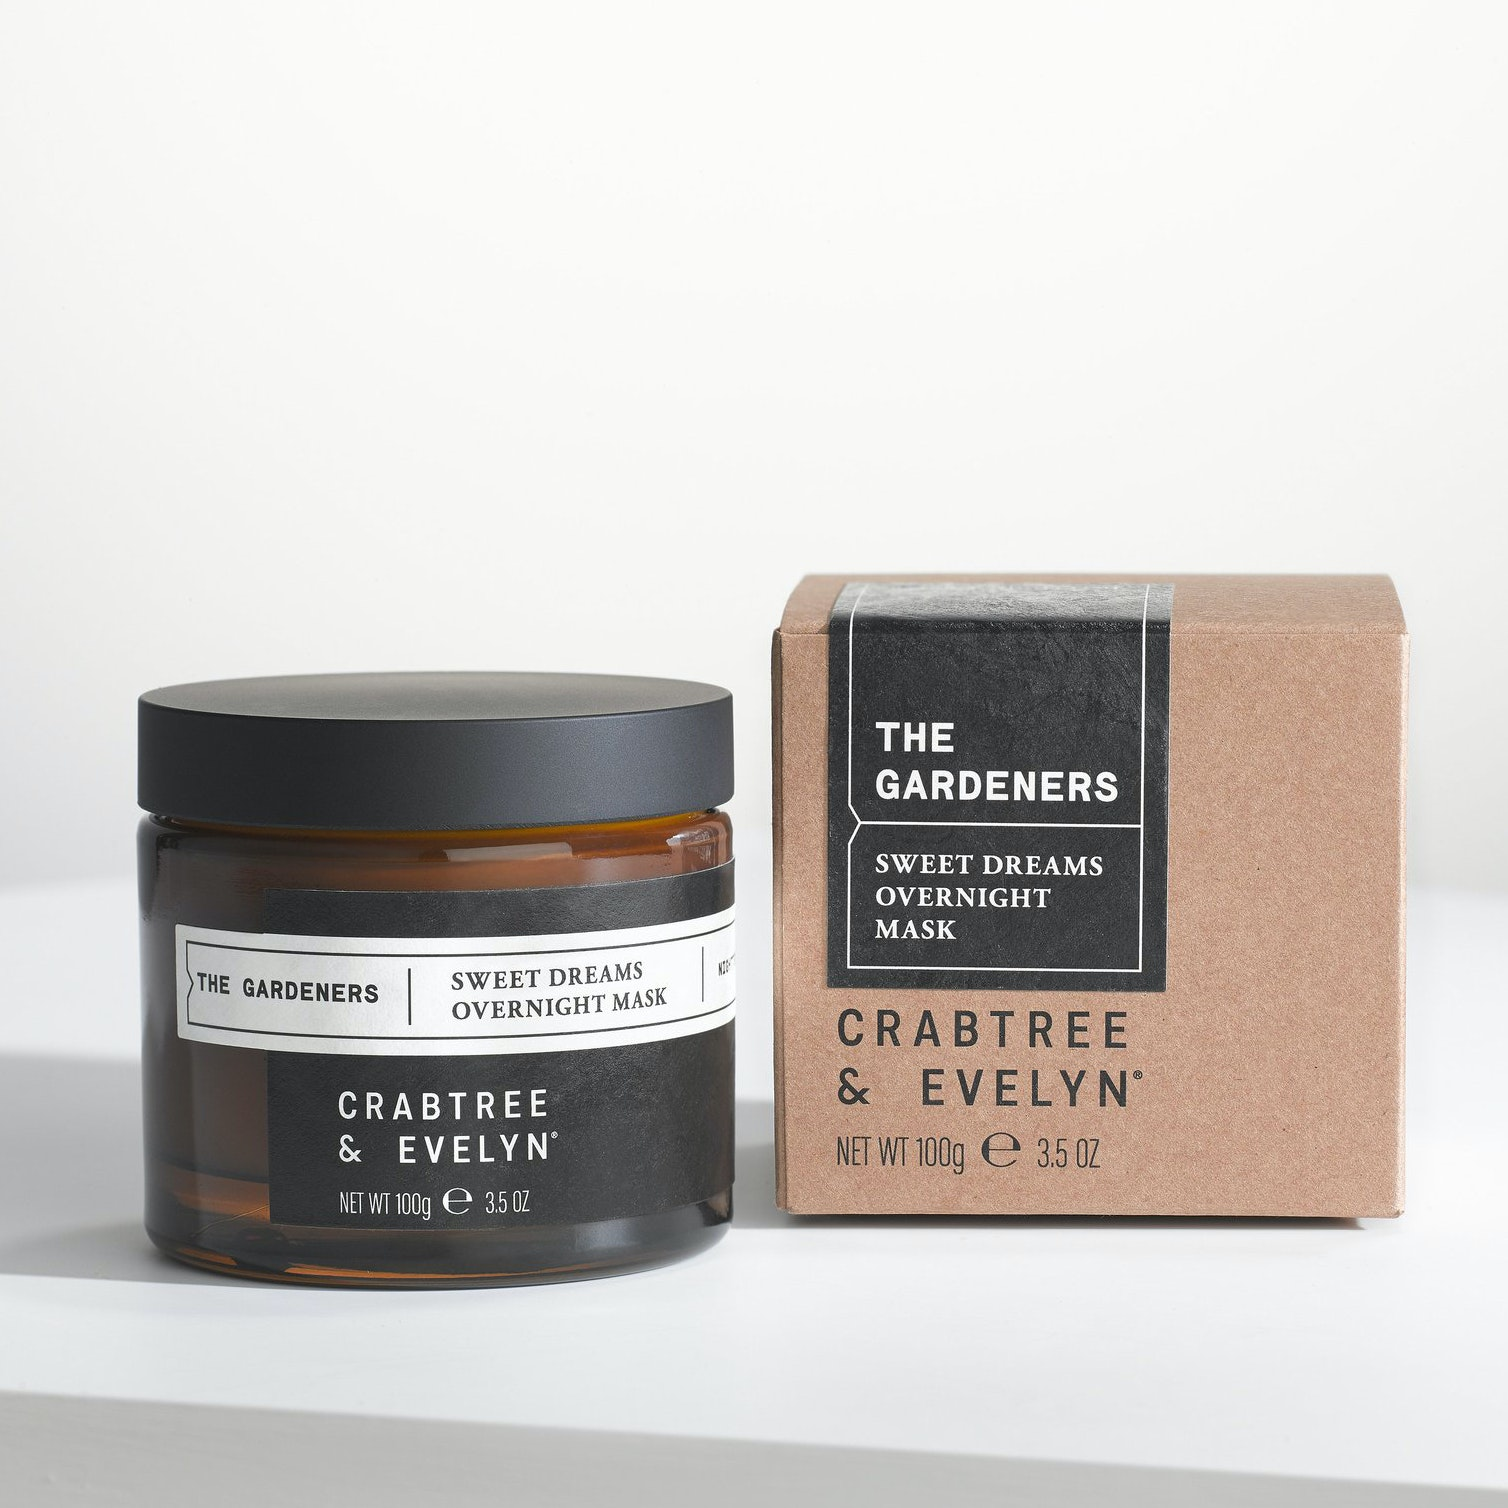 Crabtree & Evelyn® The Gardeners™ Sweet Dreams™ Overnight Mask